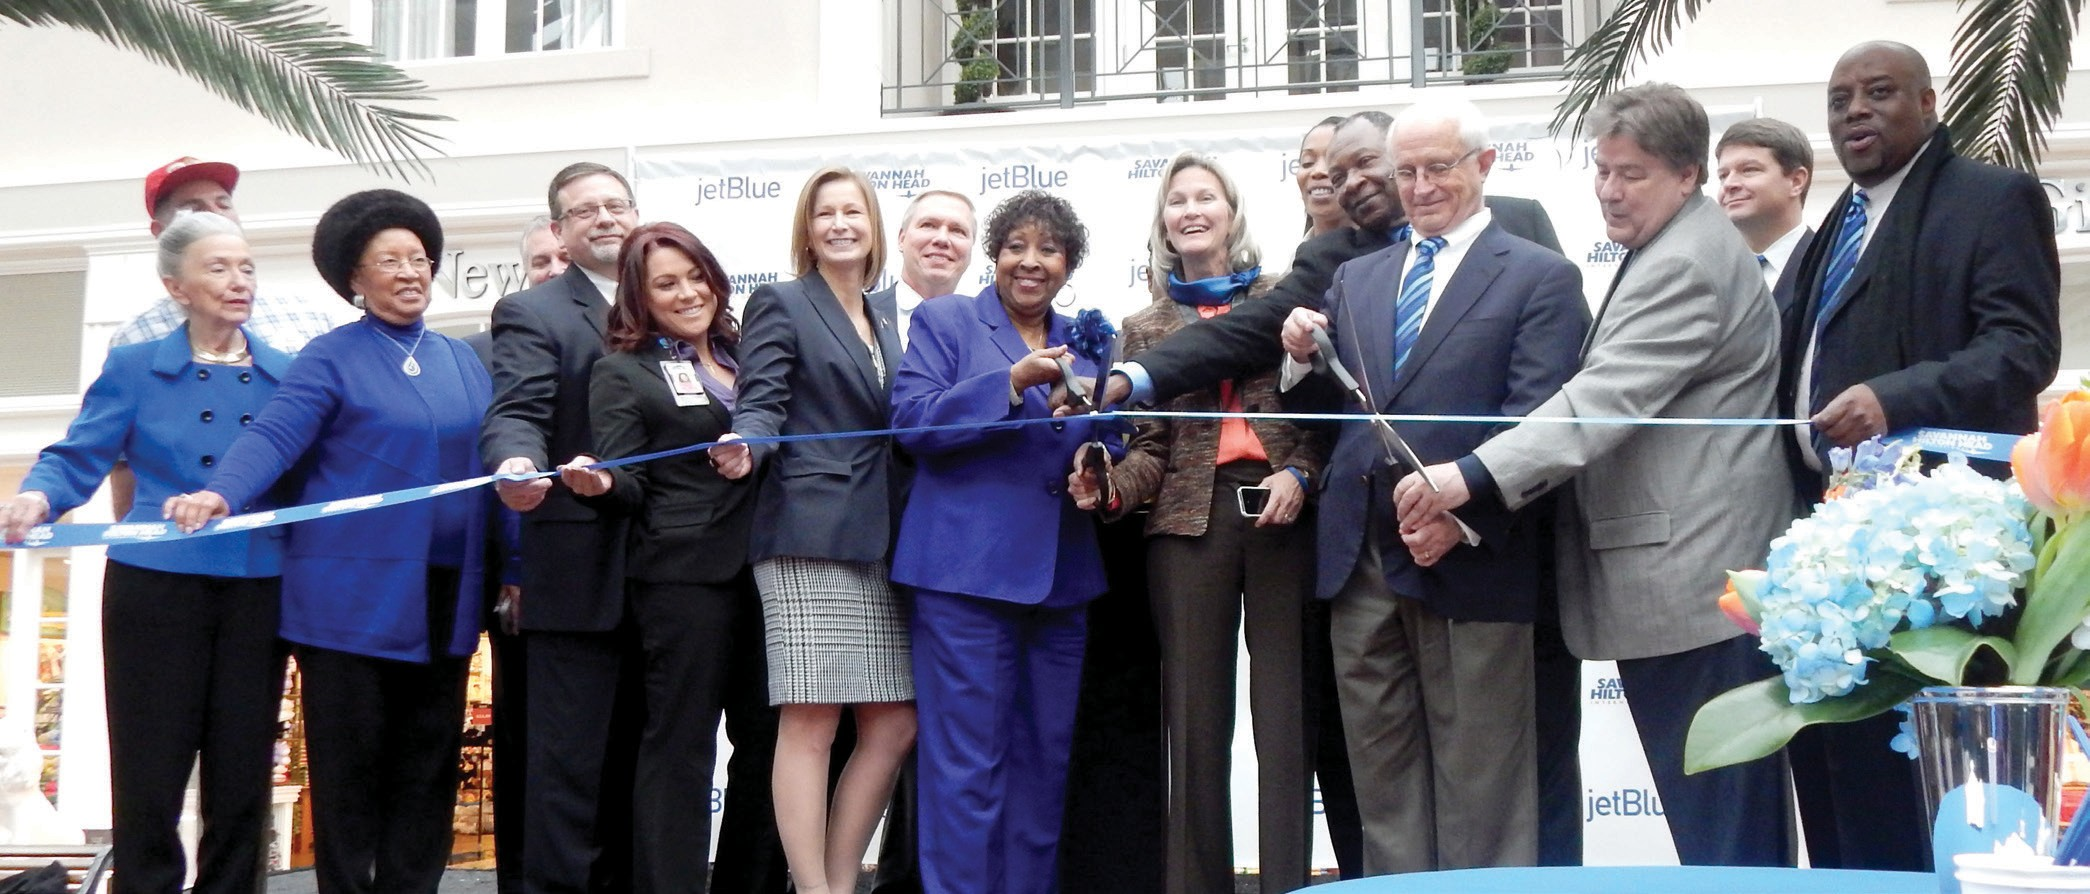 JetBlue officials along with Mayor Edna Jackson, Airport Commissioners and other dignitaries cut the ribbon in celebration of JetBlue adding flights to Savannah.